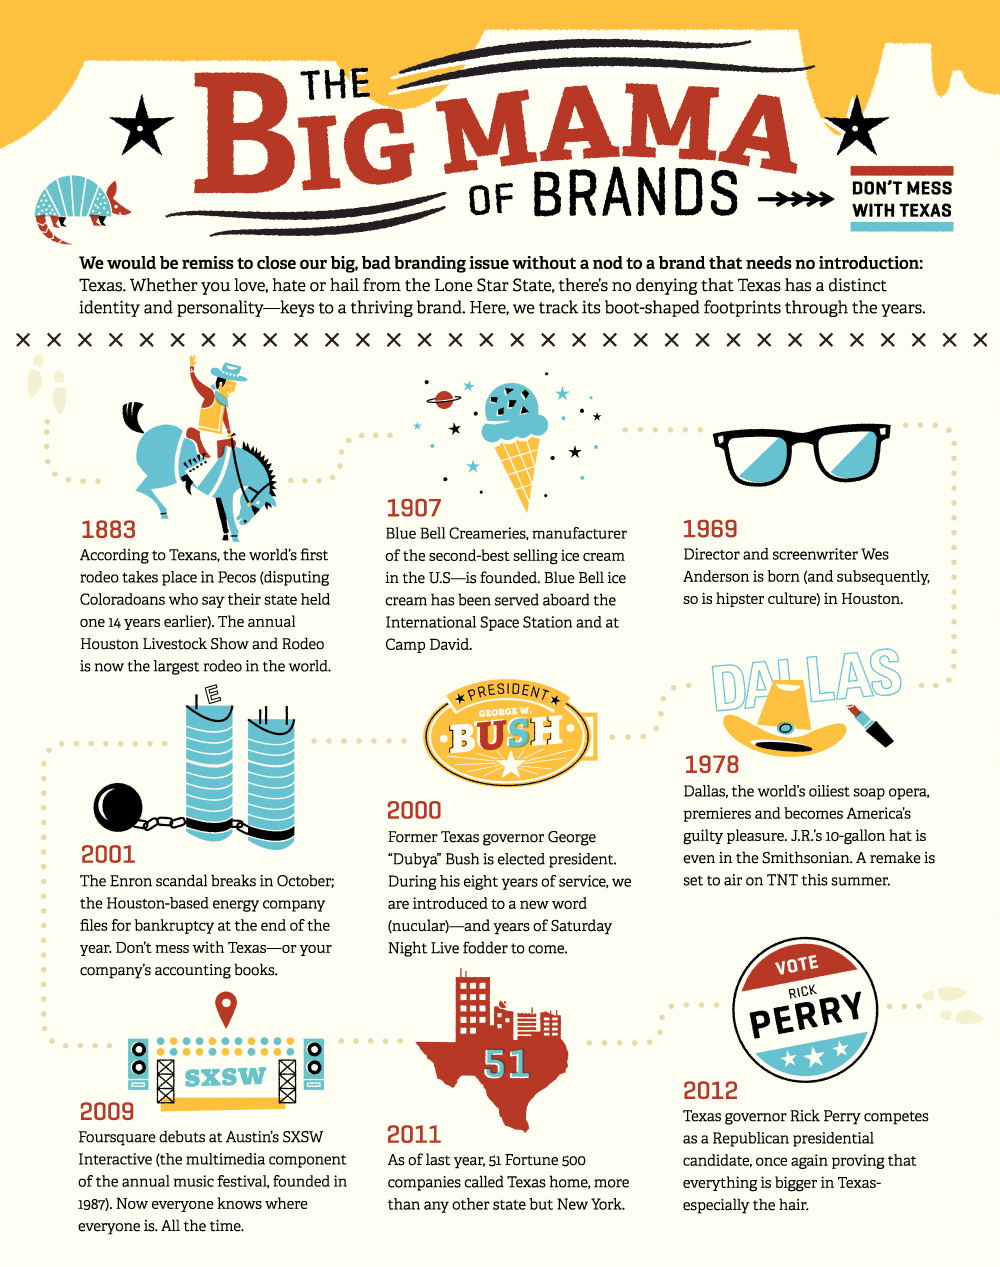 The Big Mama of Brands: Don't Mess with Texas